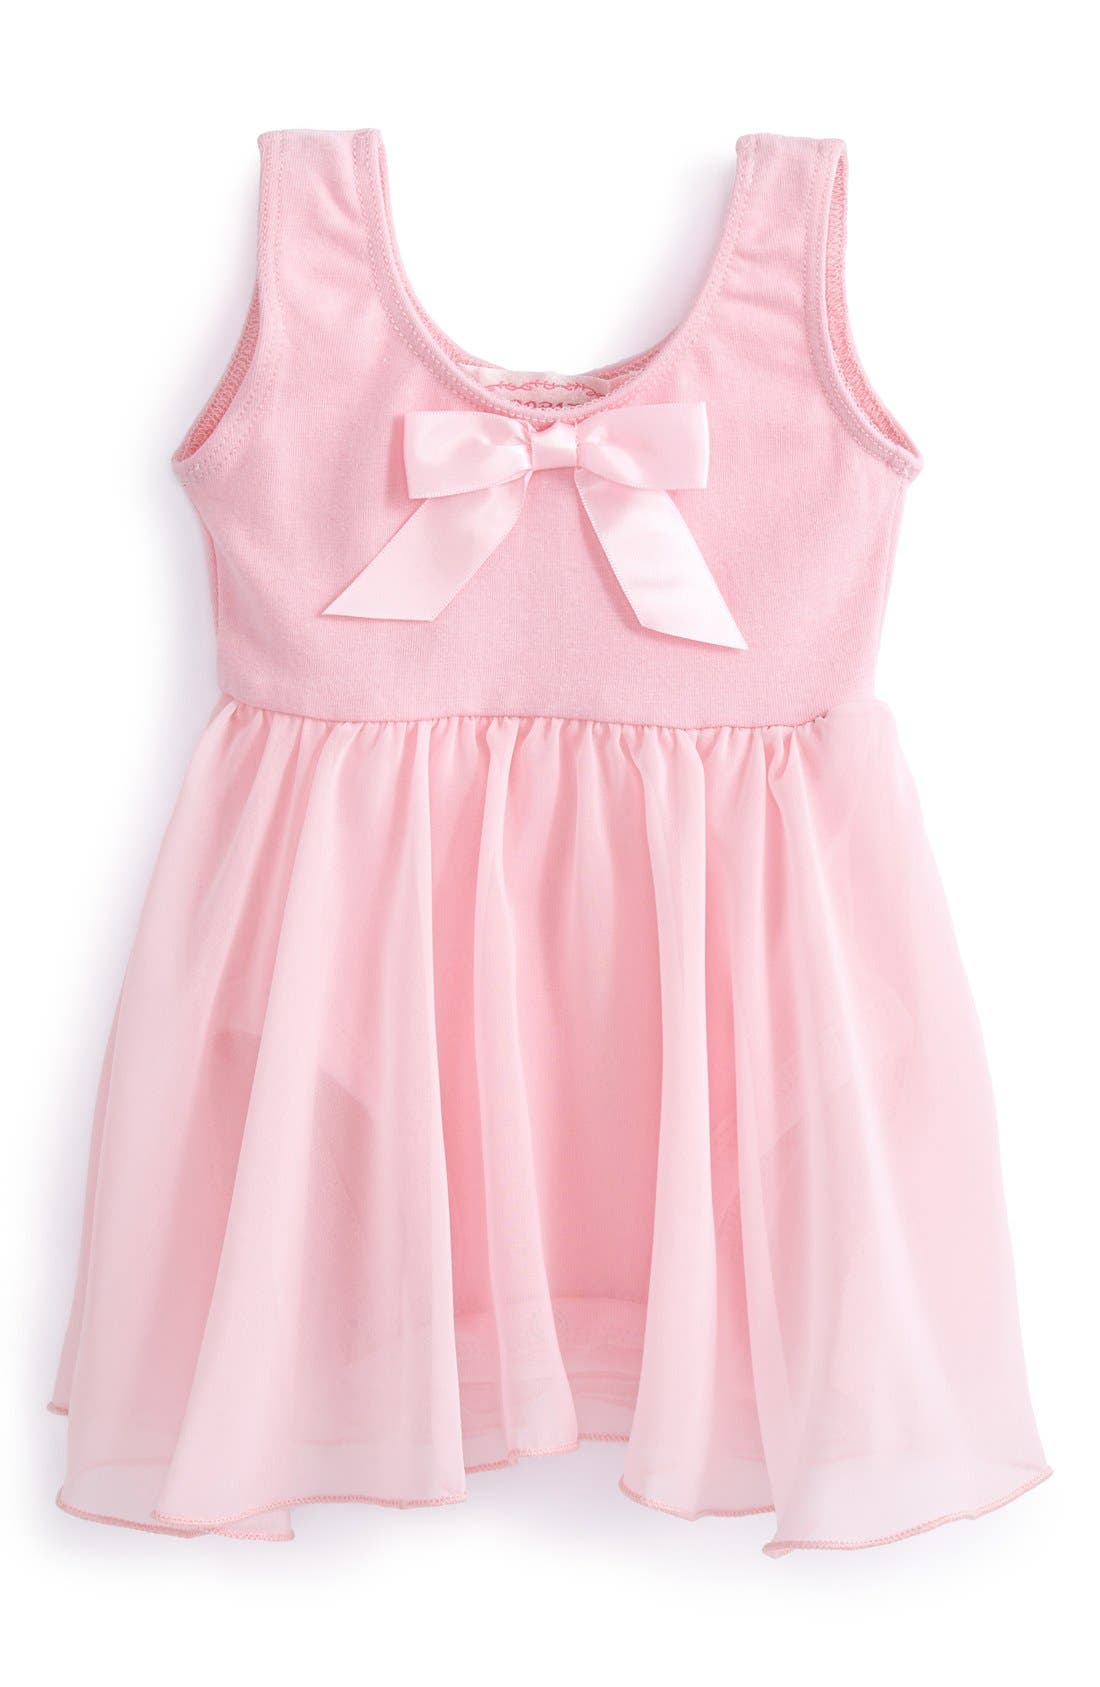 Alternate Image 1 Selected - Popatu Ballerina Dress (Baby Girls)